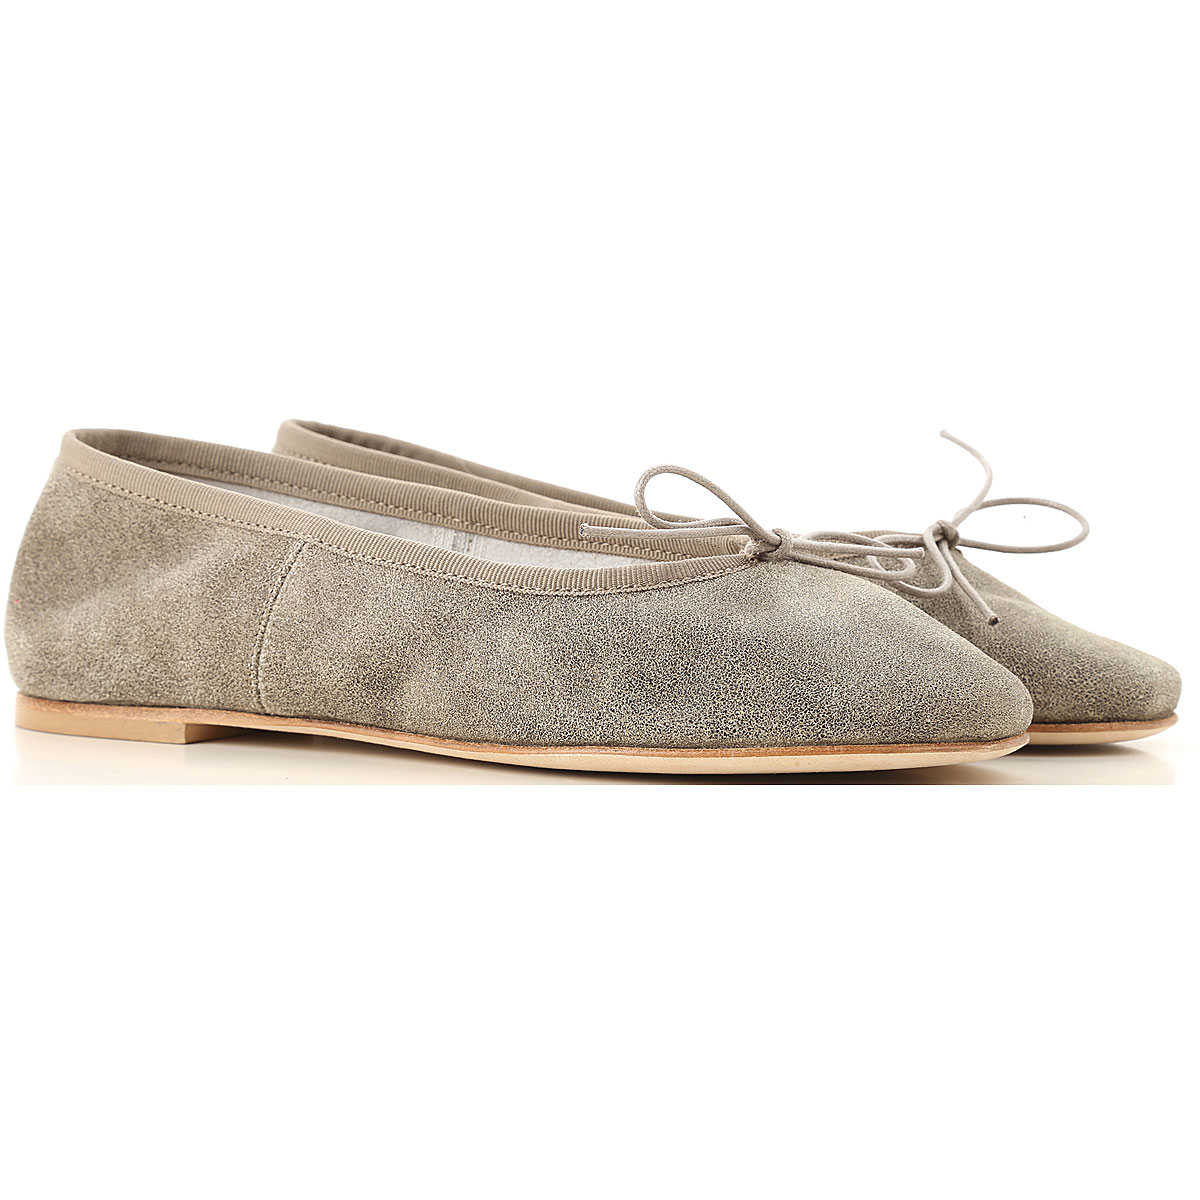 Raffaello Ballet Flats Ballerina Shoes for Women On Sale in Outlet